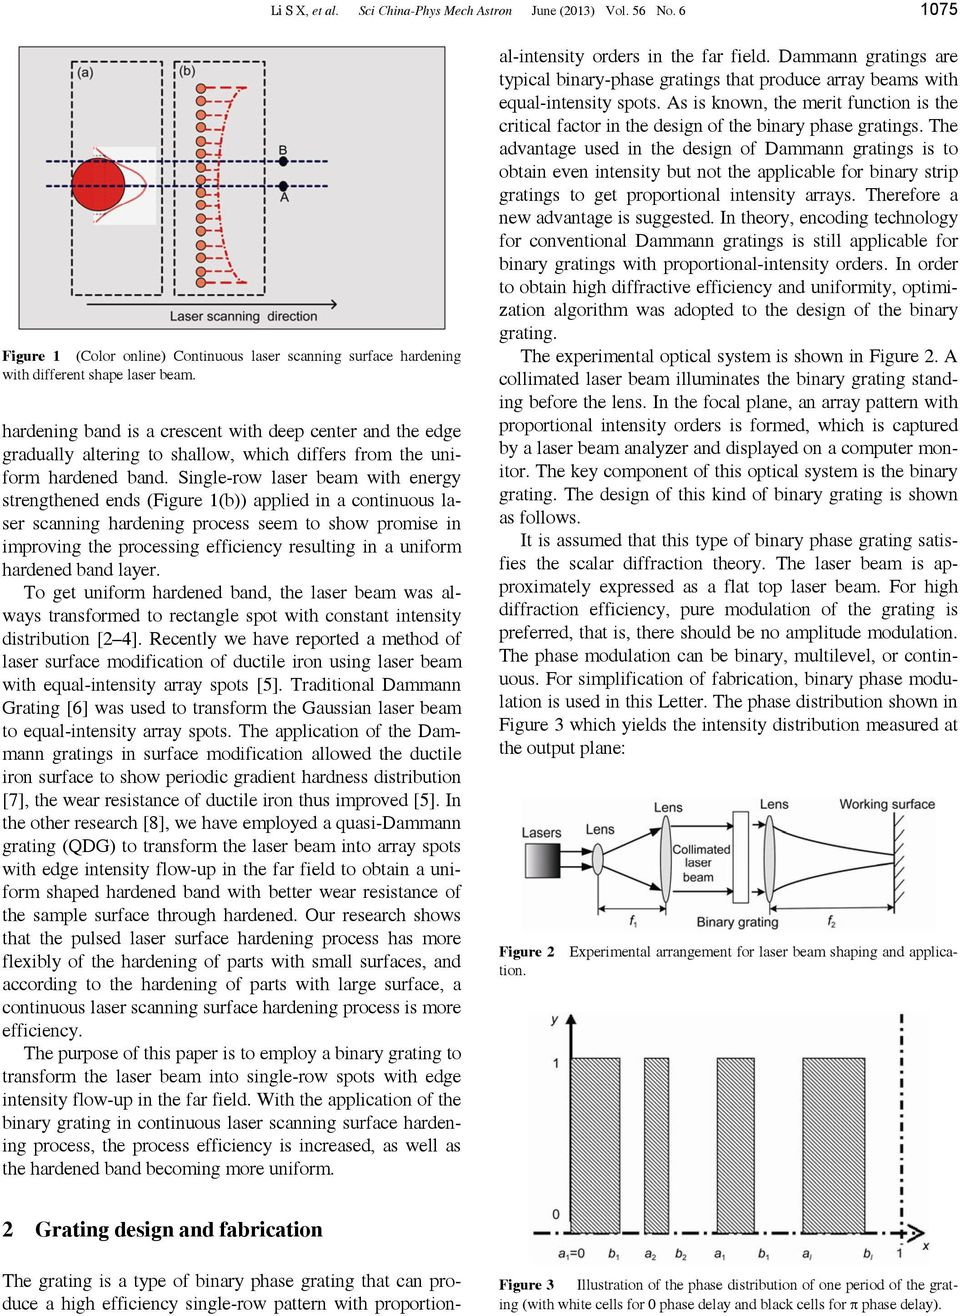 Single-row laser beam with energy strengthened ends (Figure (b)) applied in a continuous laser scanning hardening process seem to show promise in improving the processing efficiency resulting in a